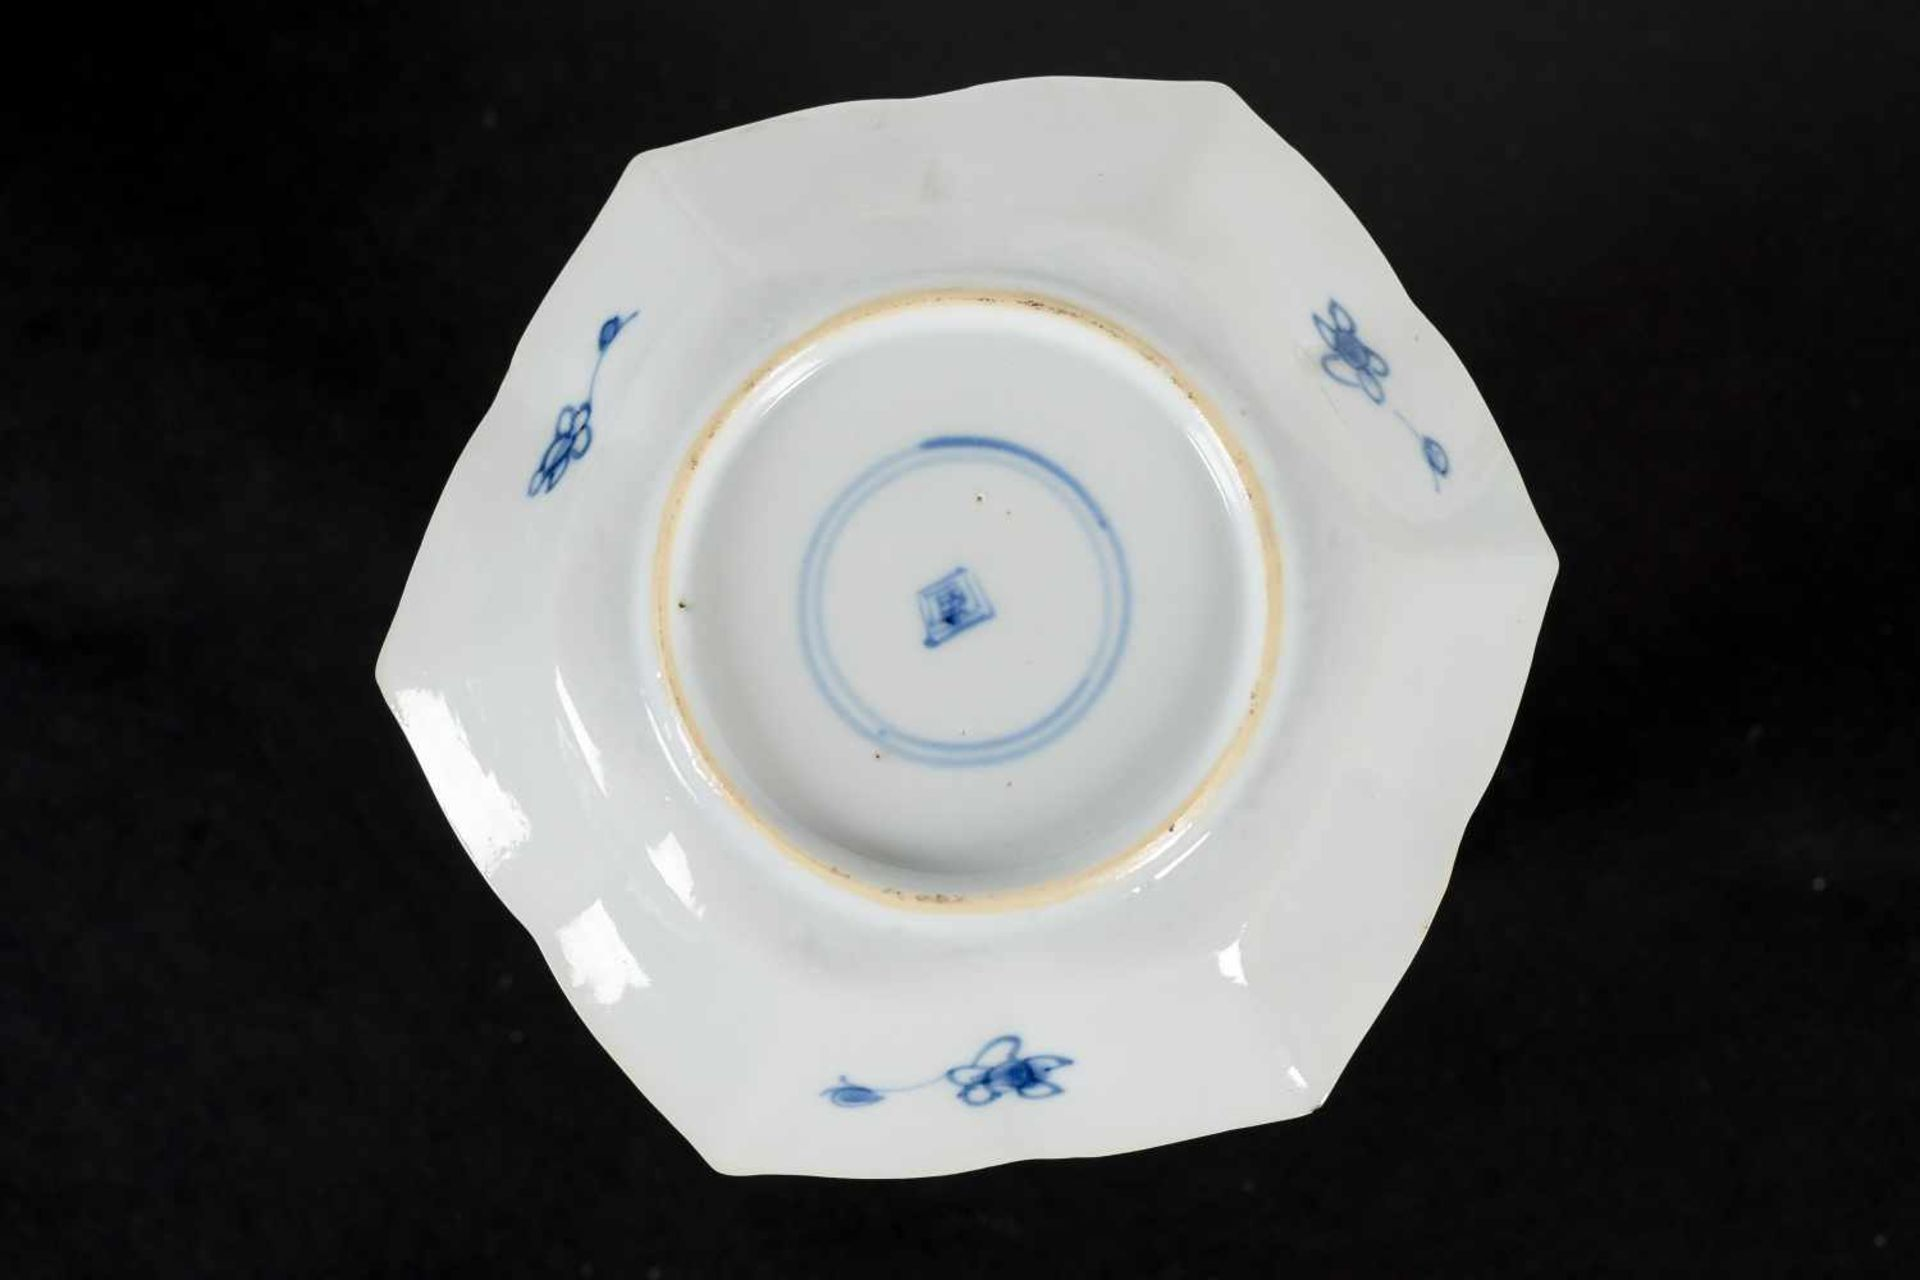 A set of three hexagonal blue and white porcelain cups with saucers, decorated with ducks, flowers - Bild 8 aus 12